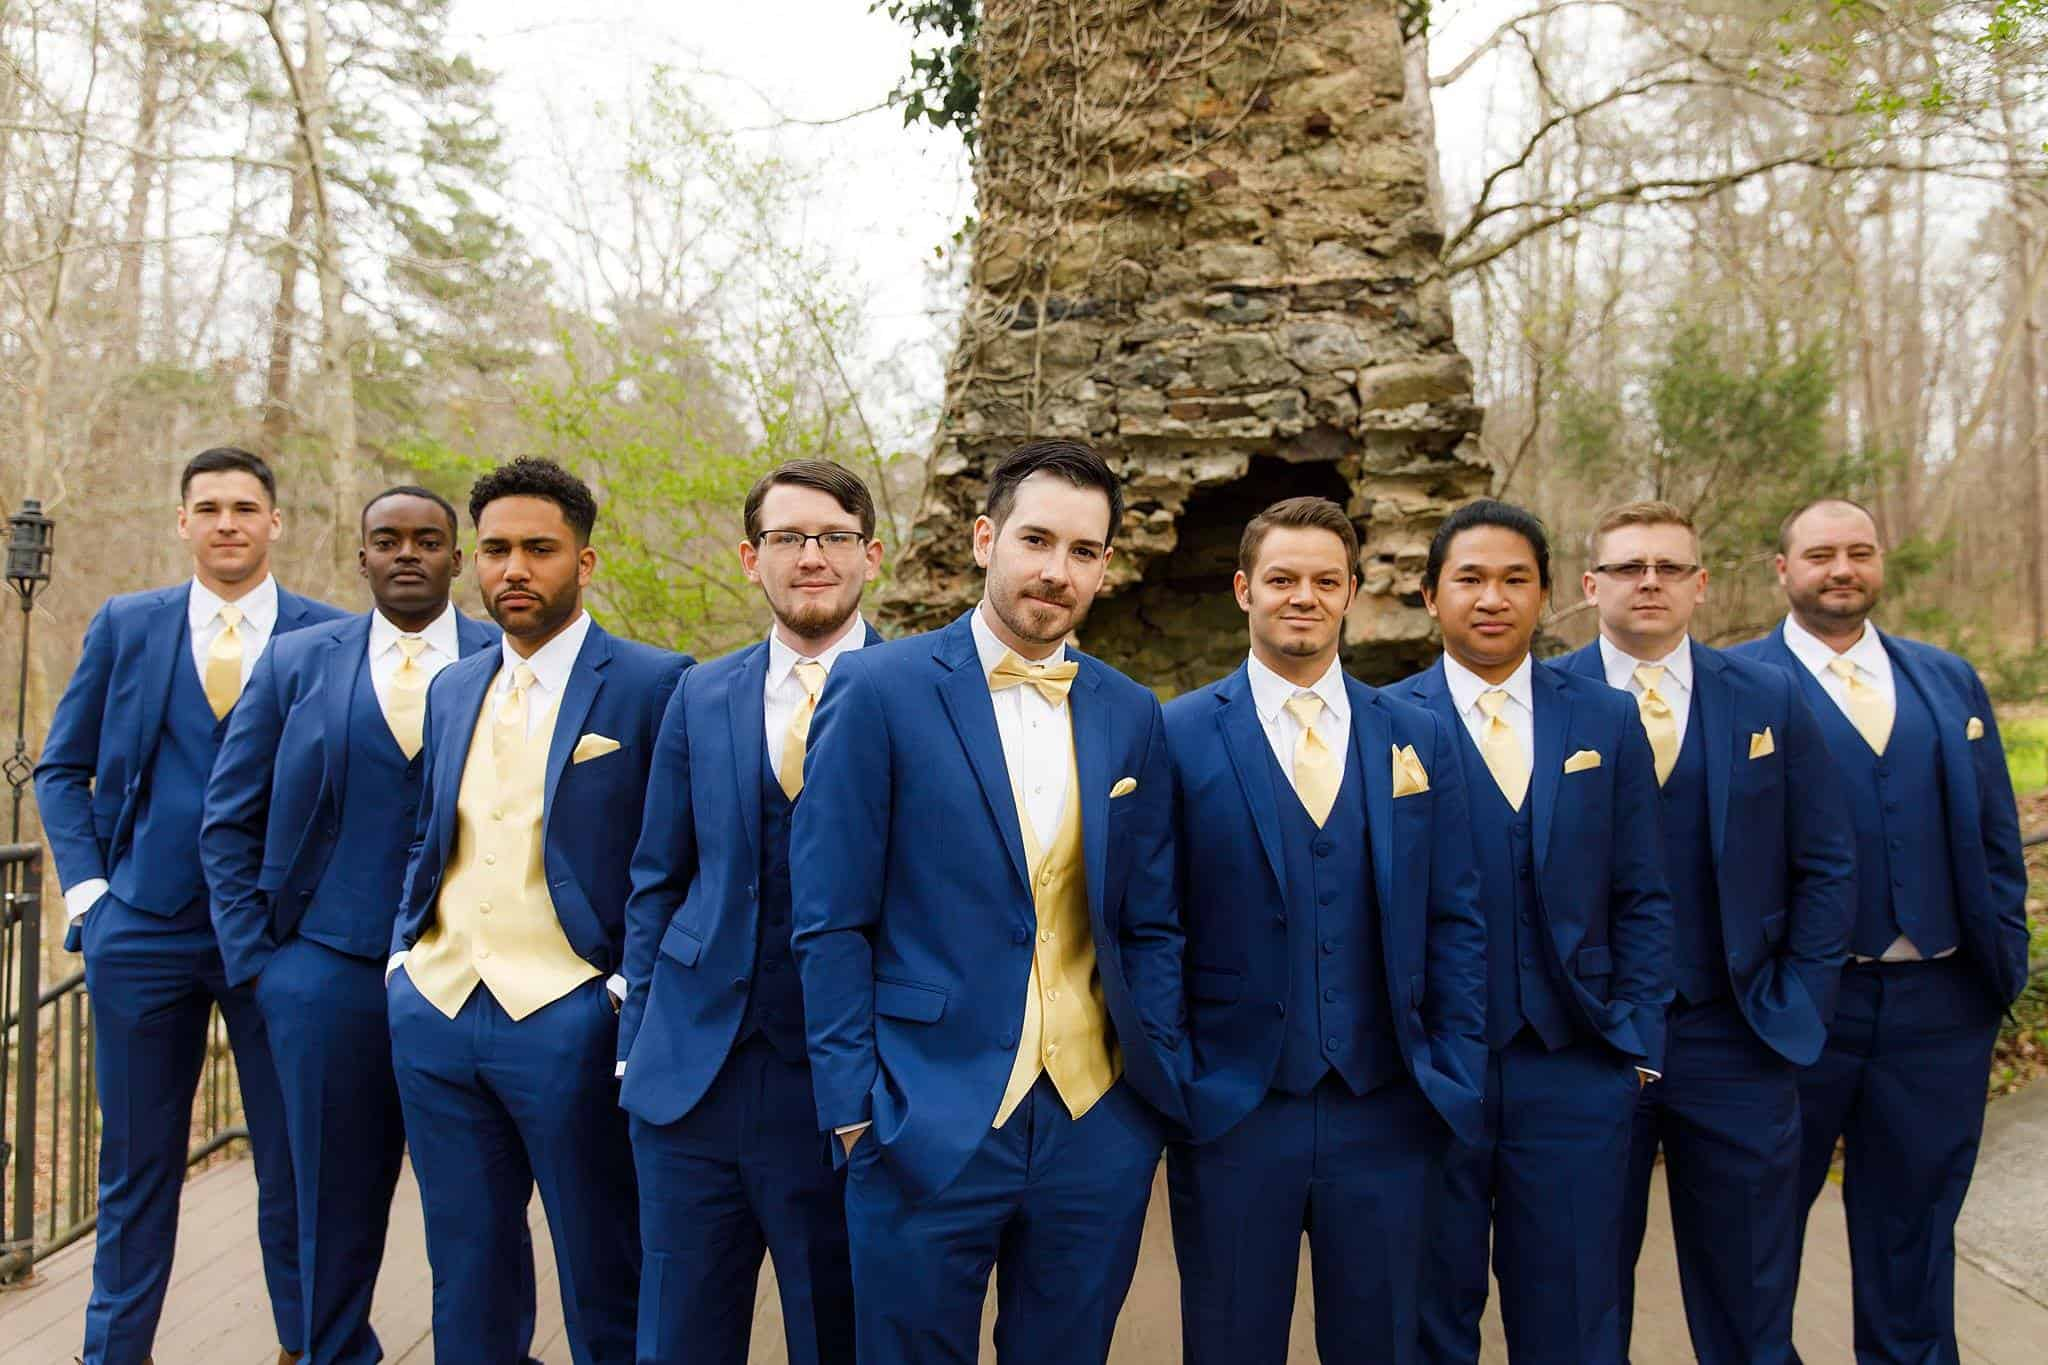 Groom in Navy Suit, Gold Vest and Bowtie with Groomsmen in Navy Suits, Navy Vest, Gold Tie and Pocket Square outdoors in front of chimney